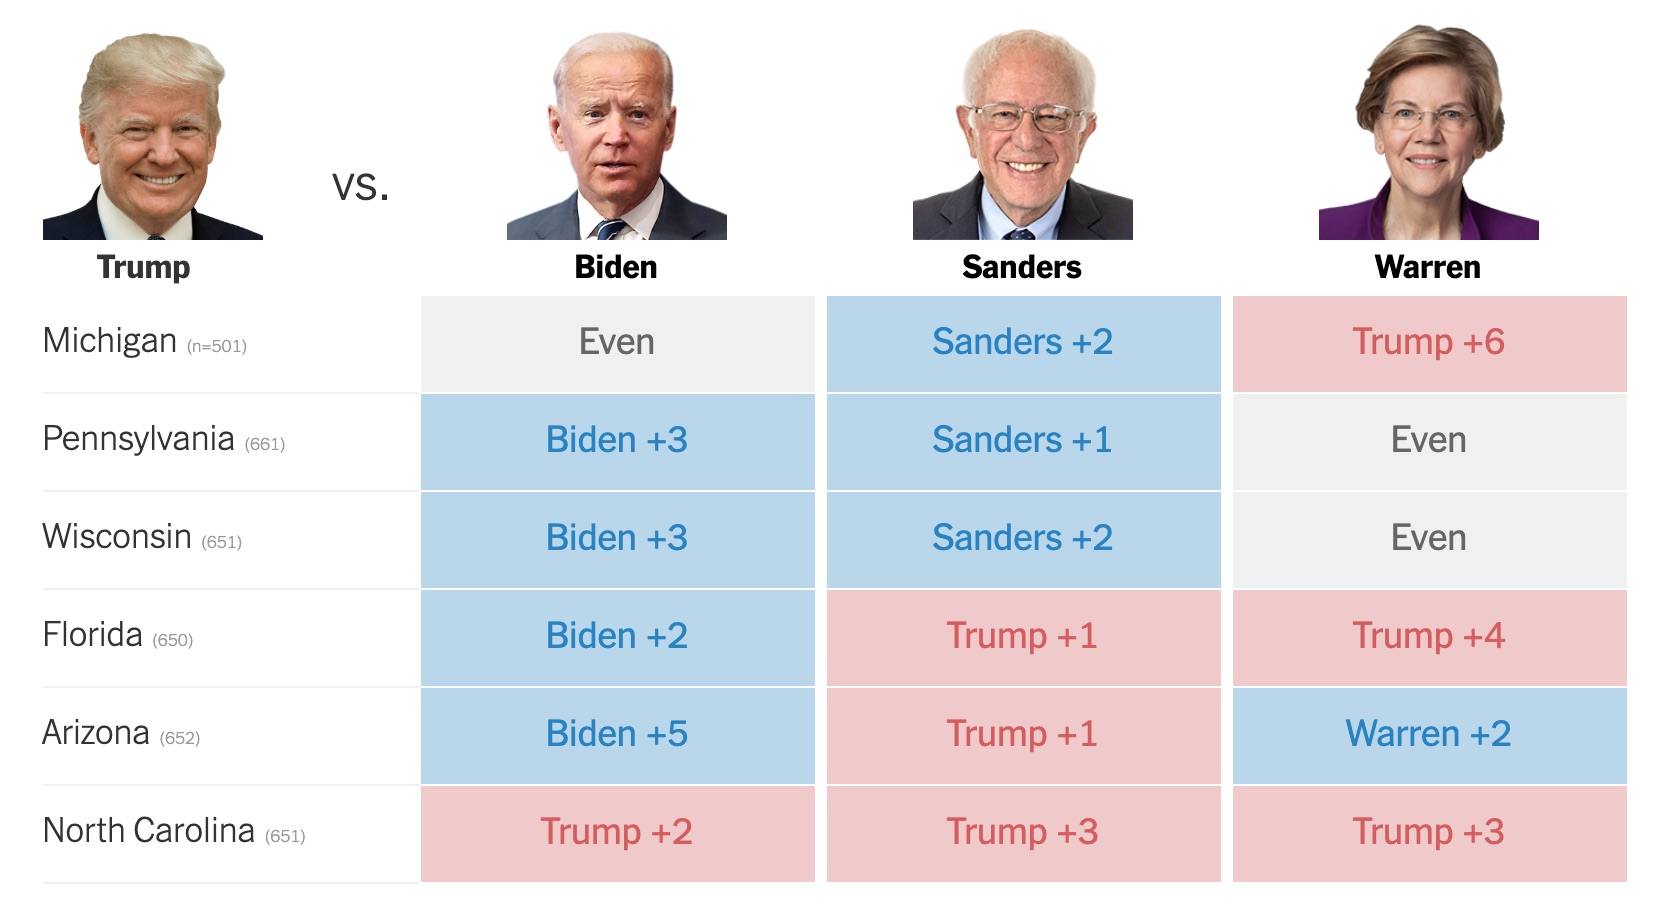 Trump is  barely beating Joe Biden in Florida, is tied with him in Michigan, and is losing to him in Pennsylvania, Wisconsin, Florida, and Arizona. Trump leads Bernie Sanders in Florida, Arizona, and North Carolina, and trails him in the other three states. All six are close. Trump is tied with Elizabeth Warren in Pennsylvania and Wisconsin, trails her in Arizona, and leads her in Michigan Florida, and North Carolina. All candidates' leads are in the 1-3 point range, excepting that Biden is up 5 in Arizona, and Trump leads Warren by 6 in Pennsylvania and 4 in Florida.